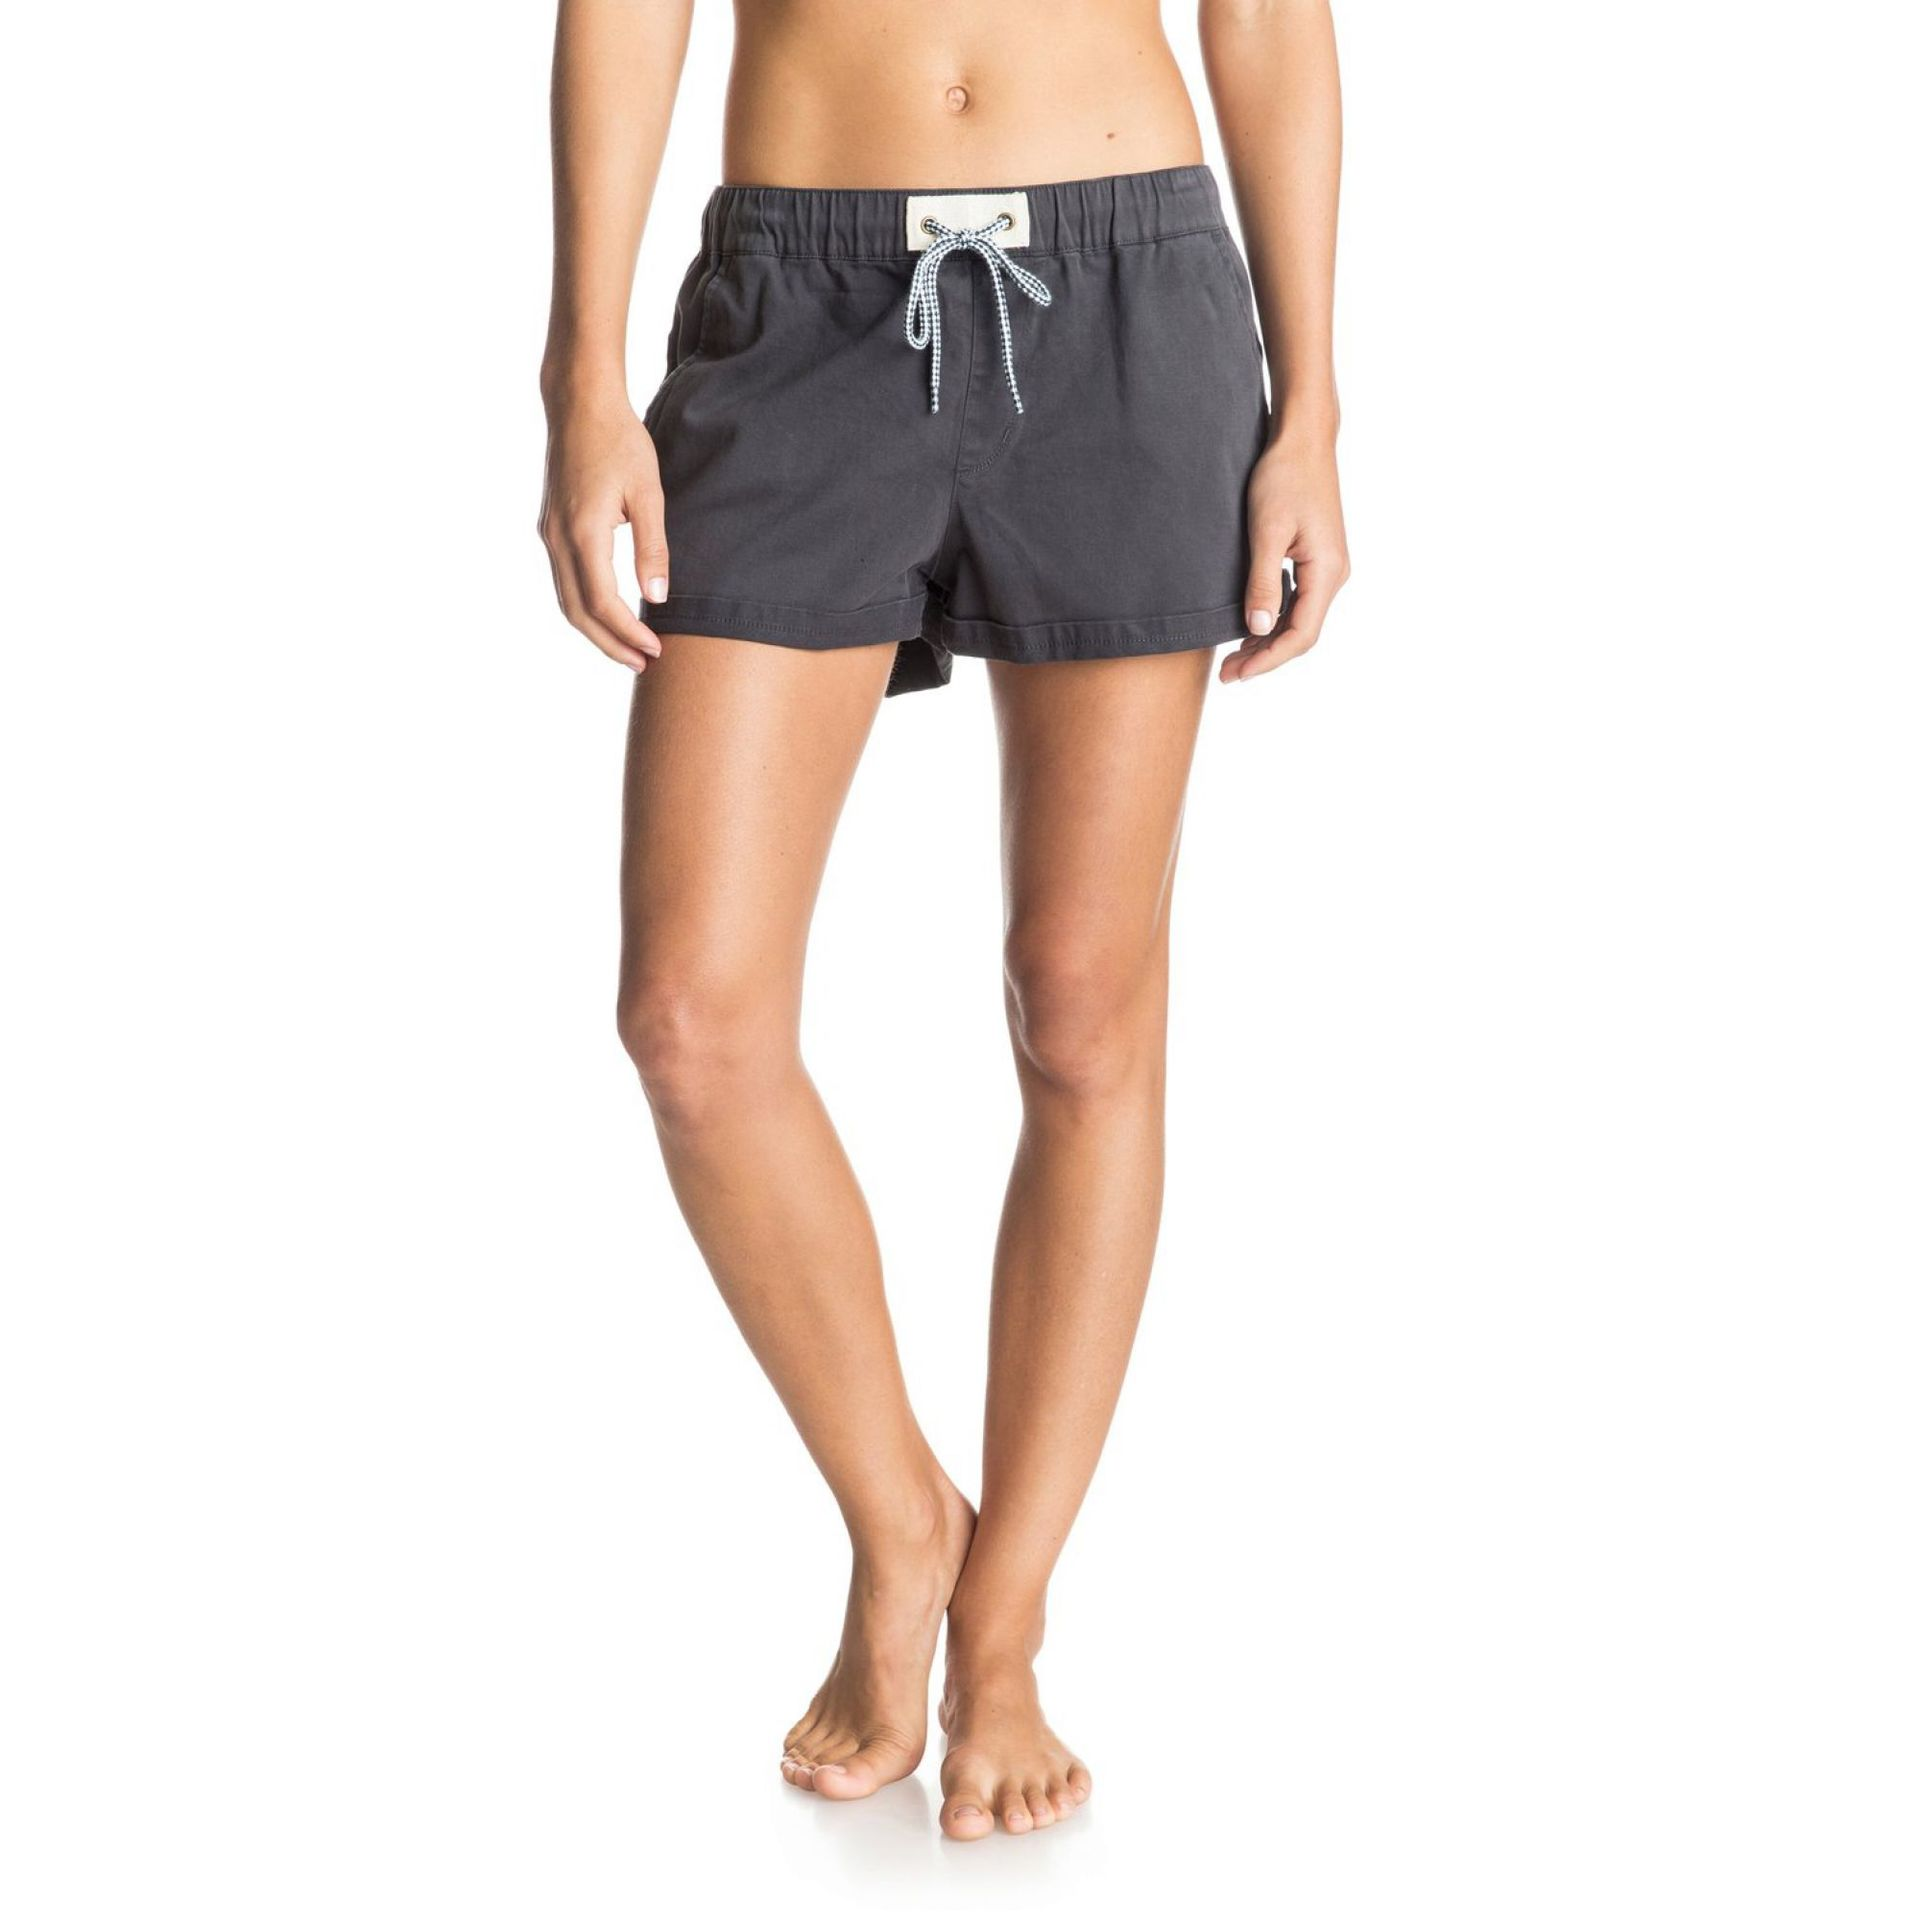 SZORTY ROXY FONXY TWILL DENIM SHORTS DARK MIDNIGHT